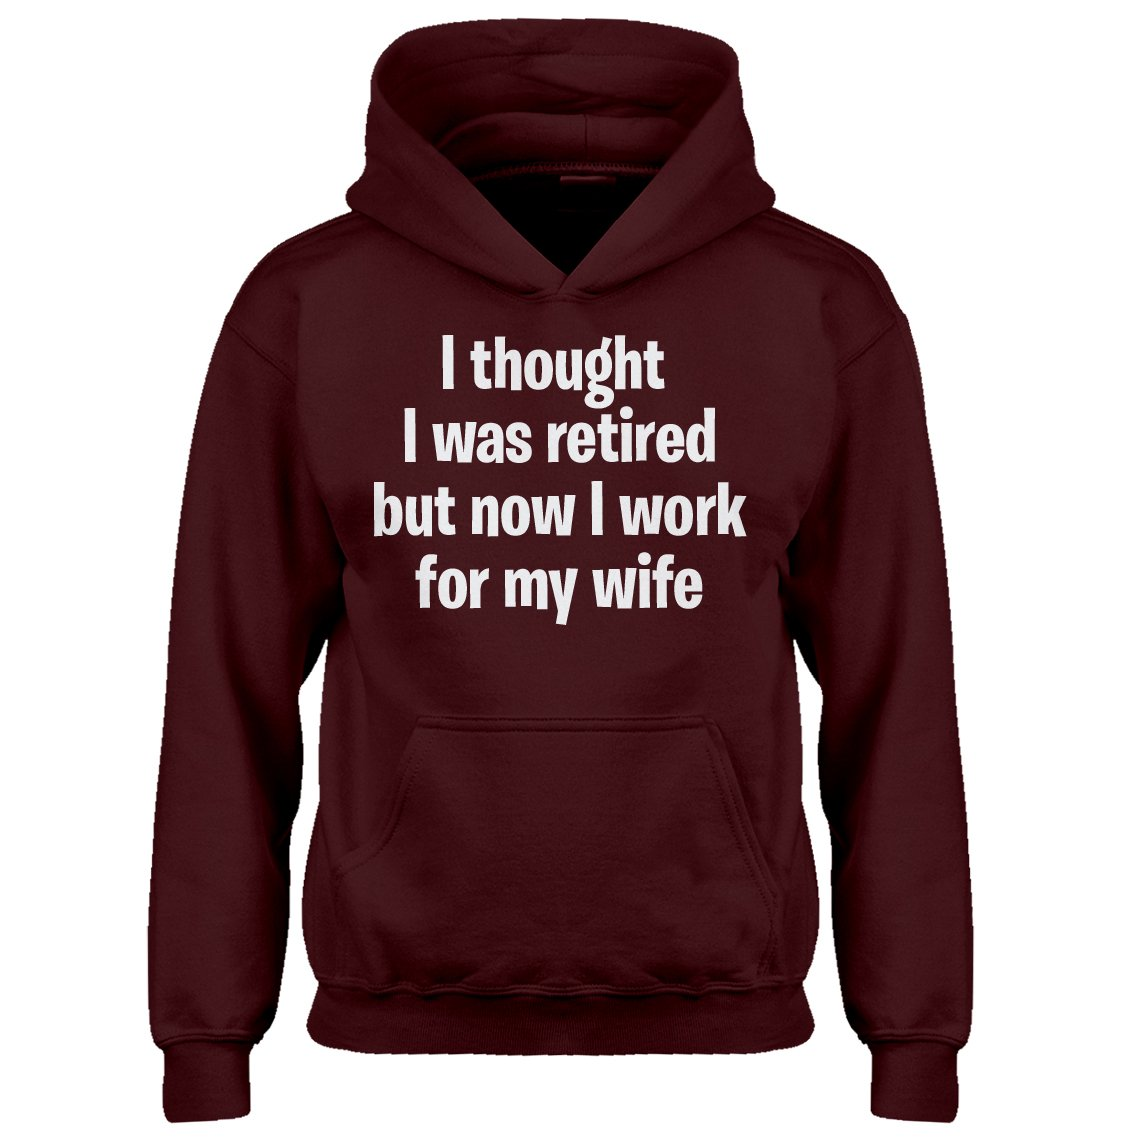 Indica Plateau Kids Hoodie I Thought I was Retired Large Maroon Hoodie